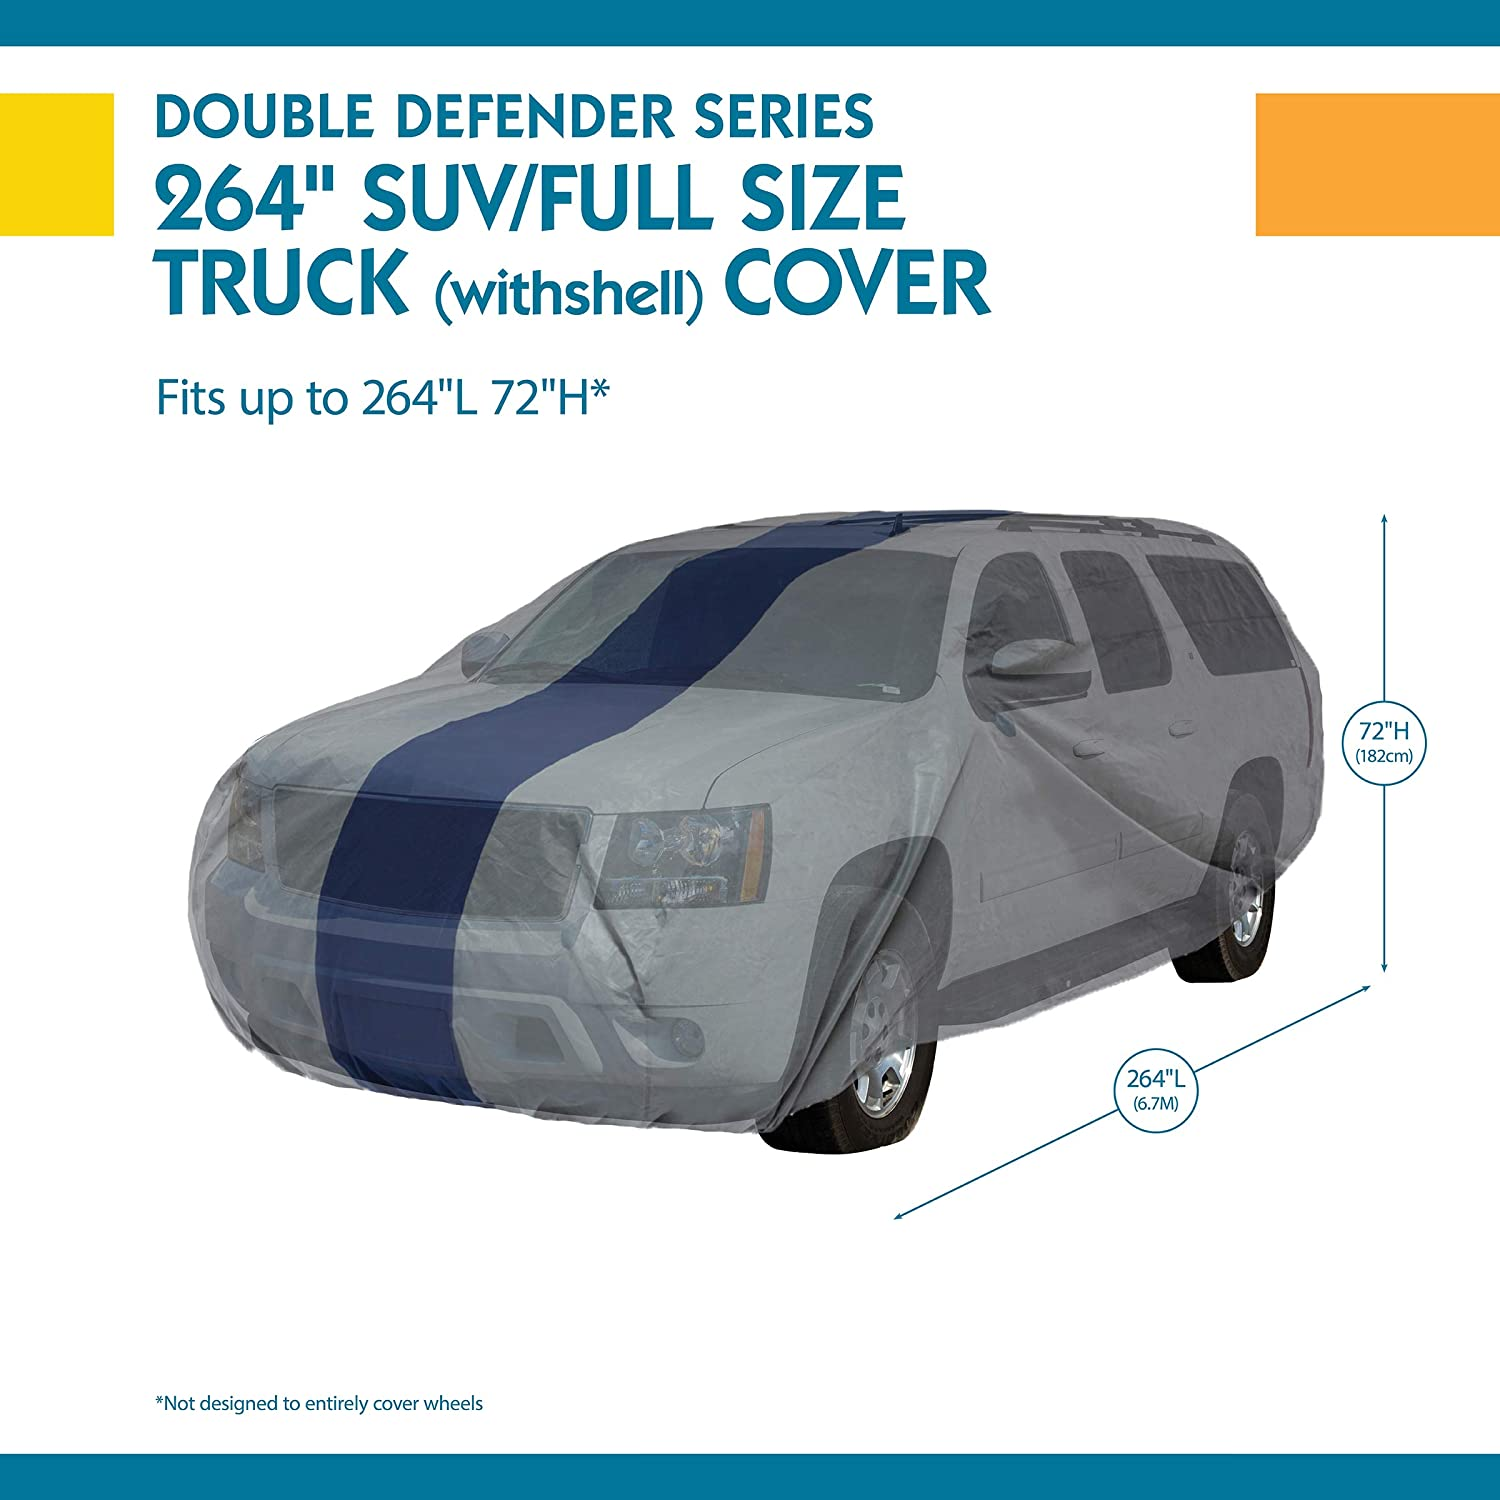 Duck Covers Double Defender SUV Cover for SUVs//Pickup Trucks with Shell or Bed Cap up to 17 5